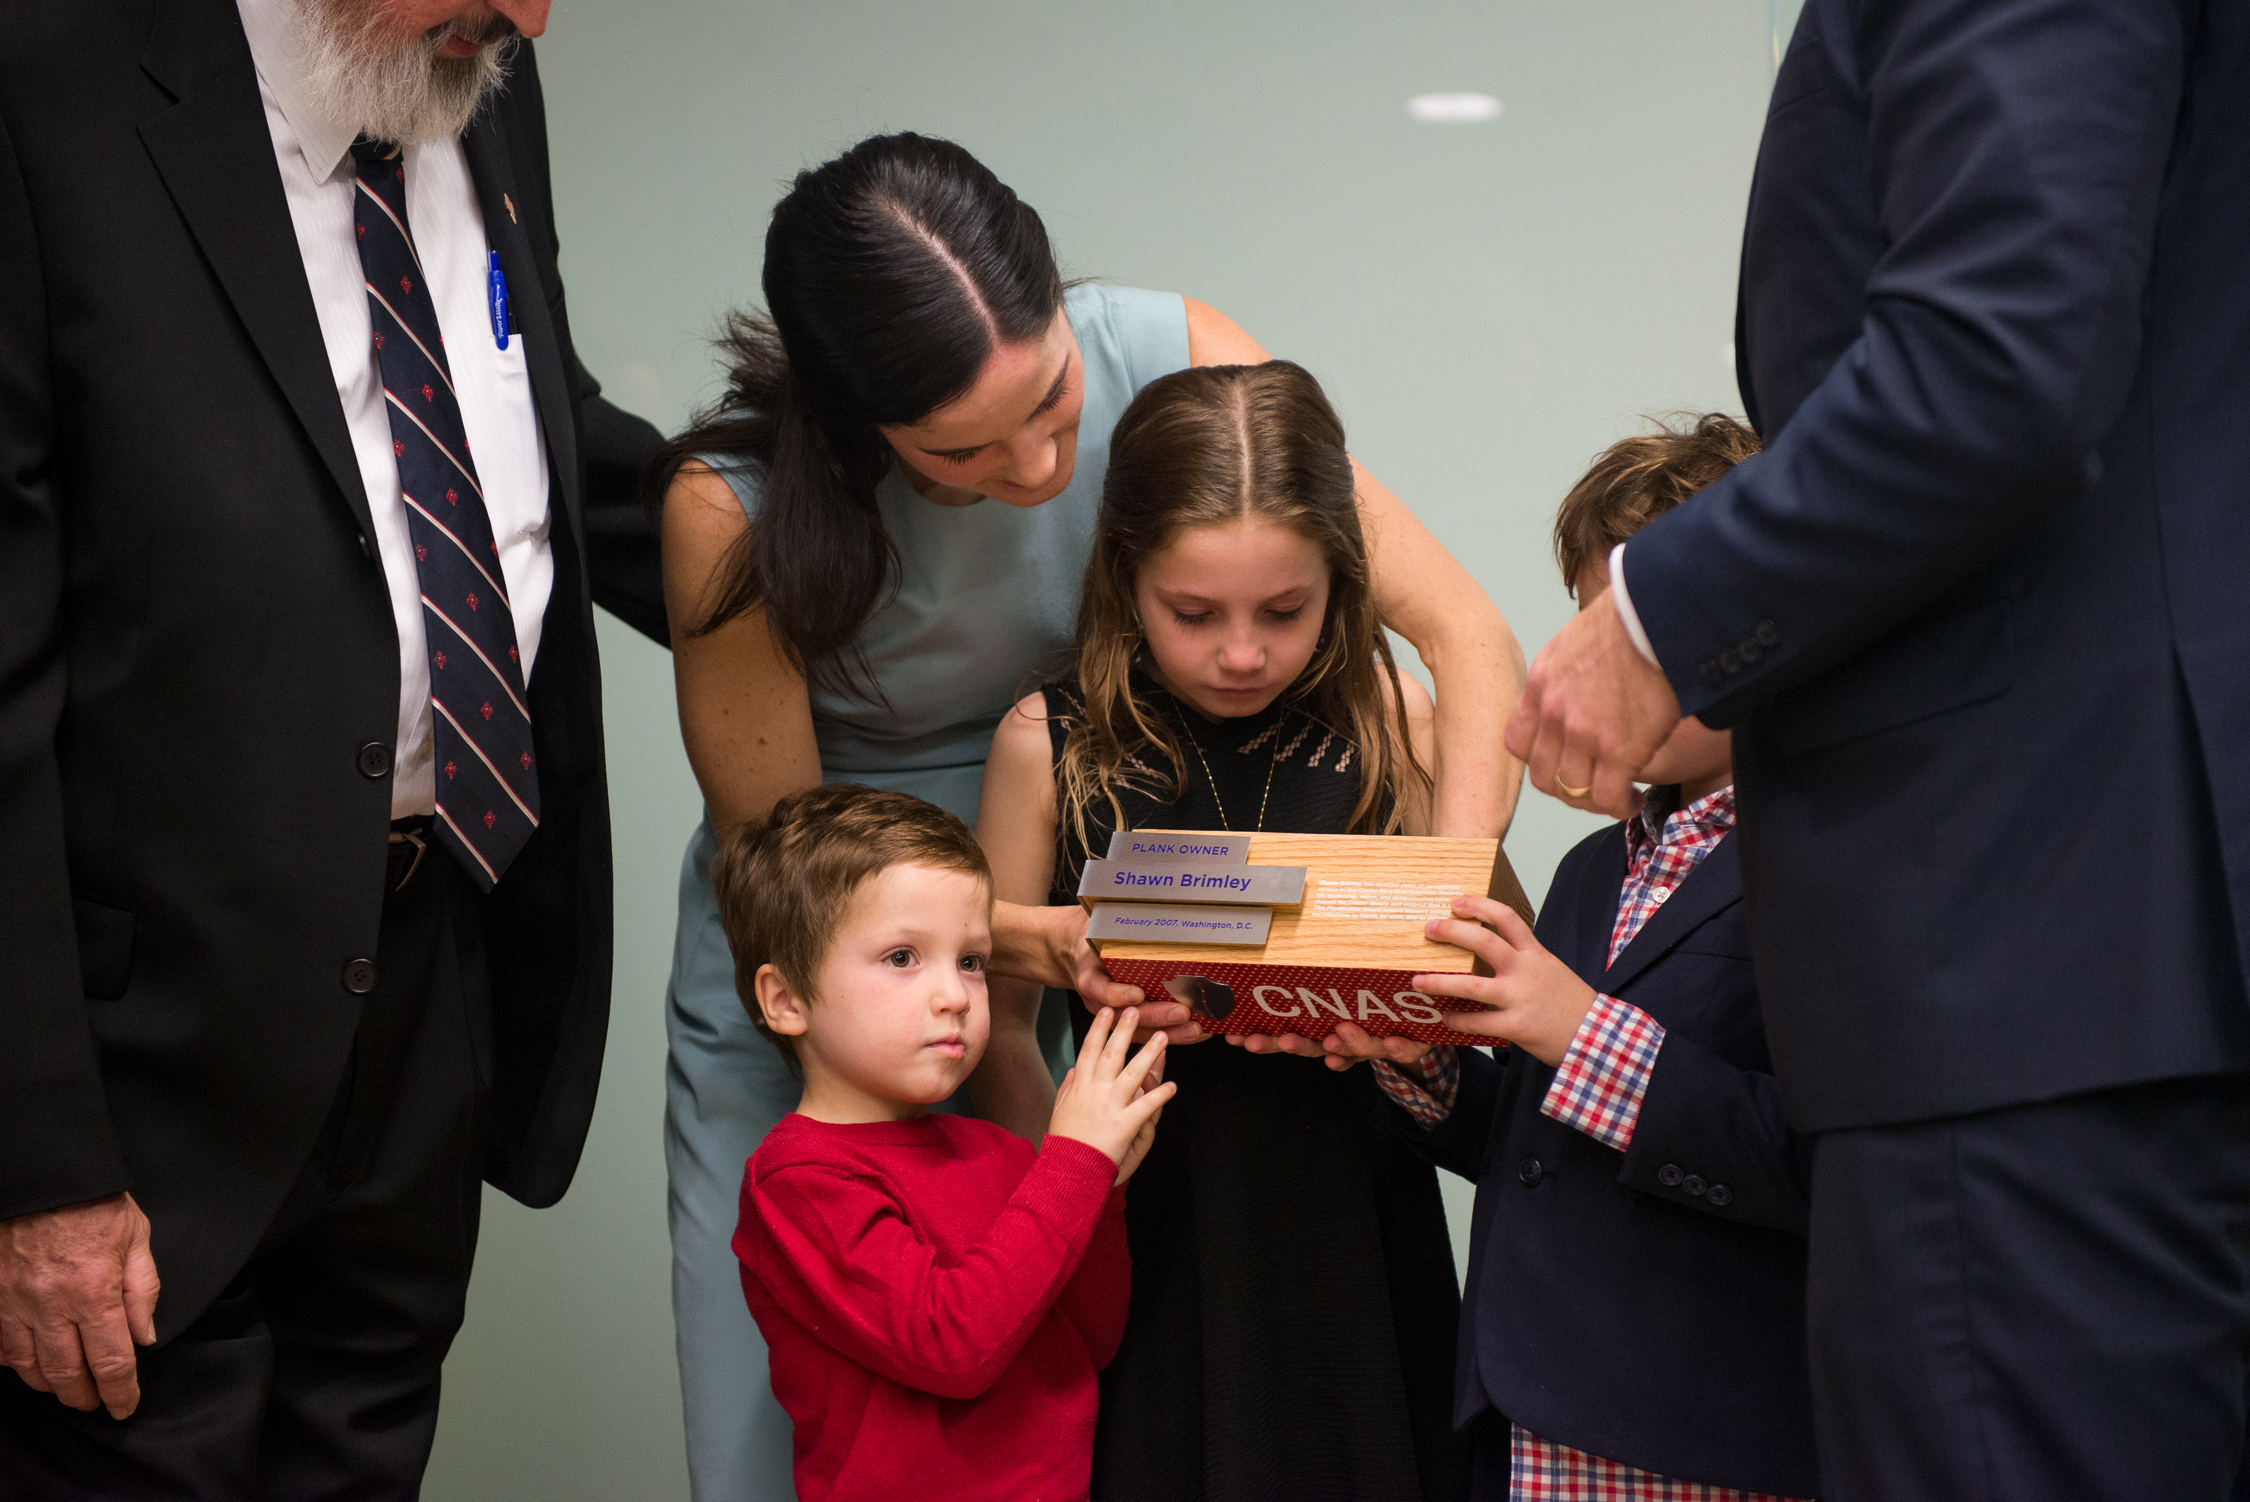 Shawn Brimley's widow Marjorie accepts plaque with her children at DC think tank